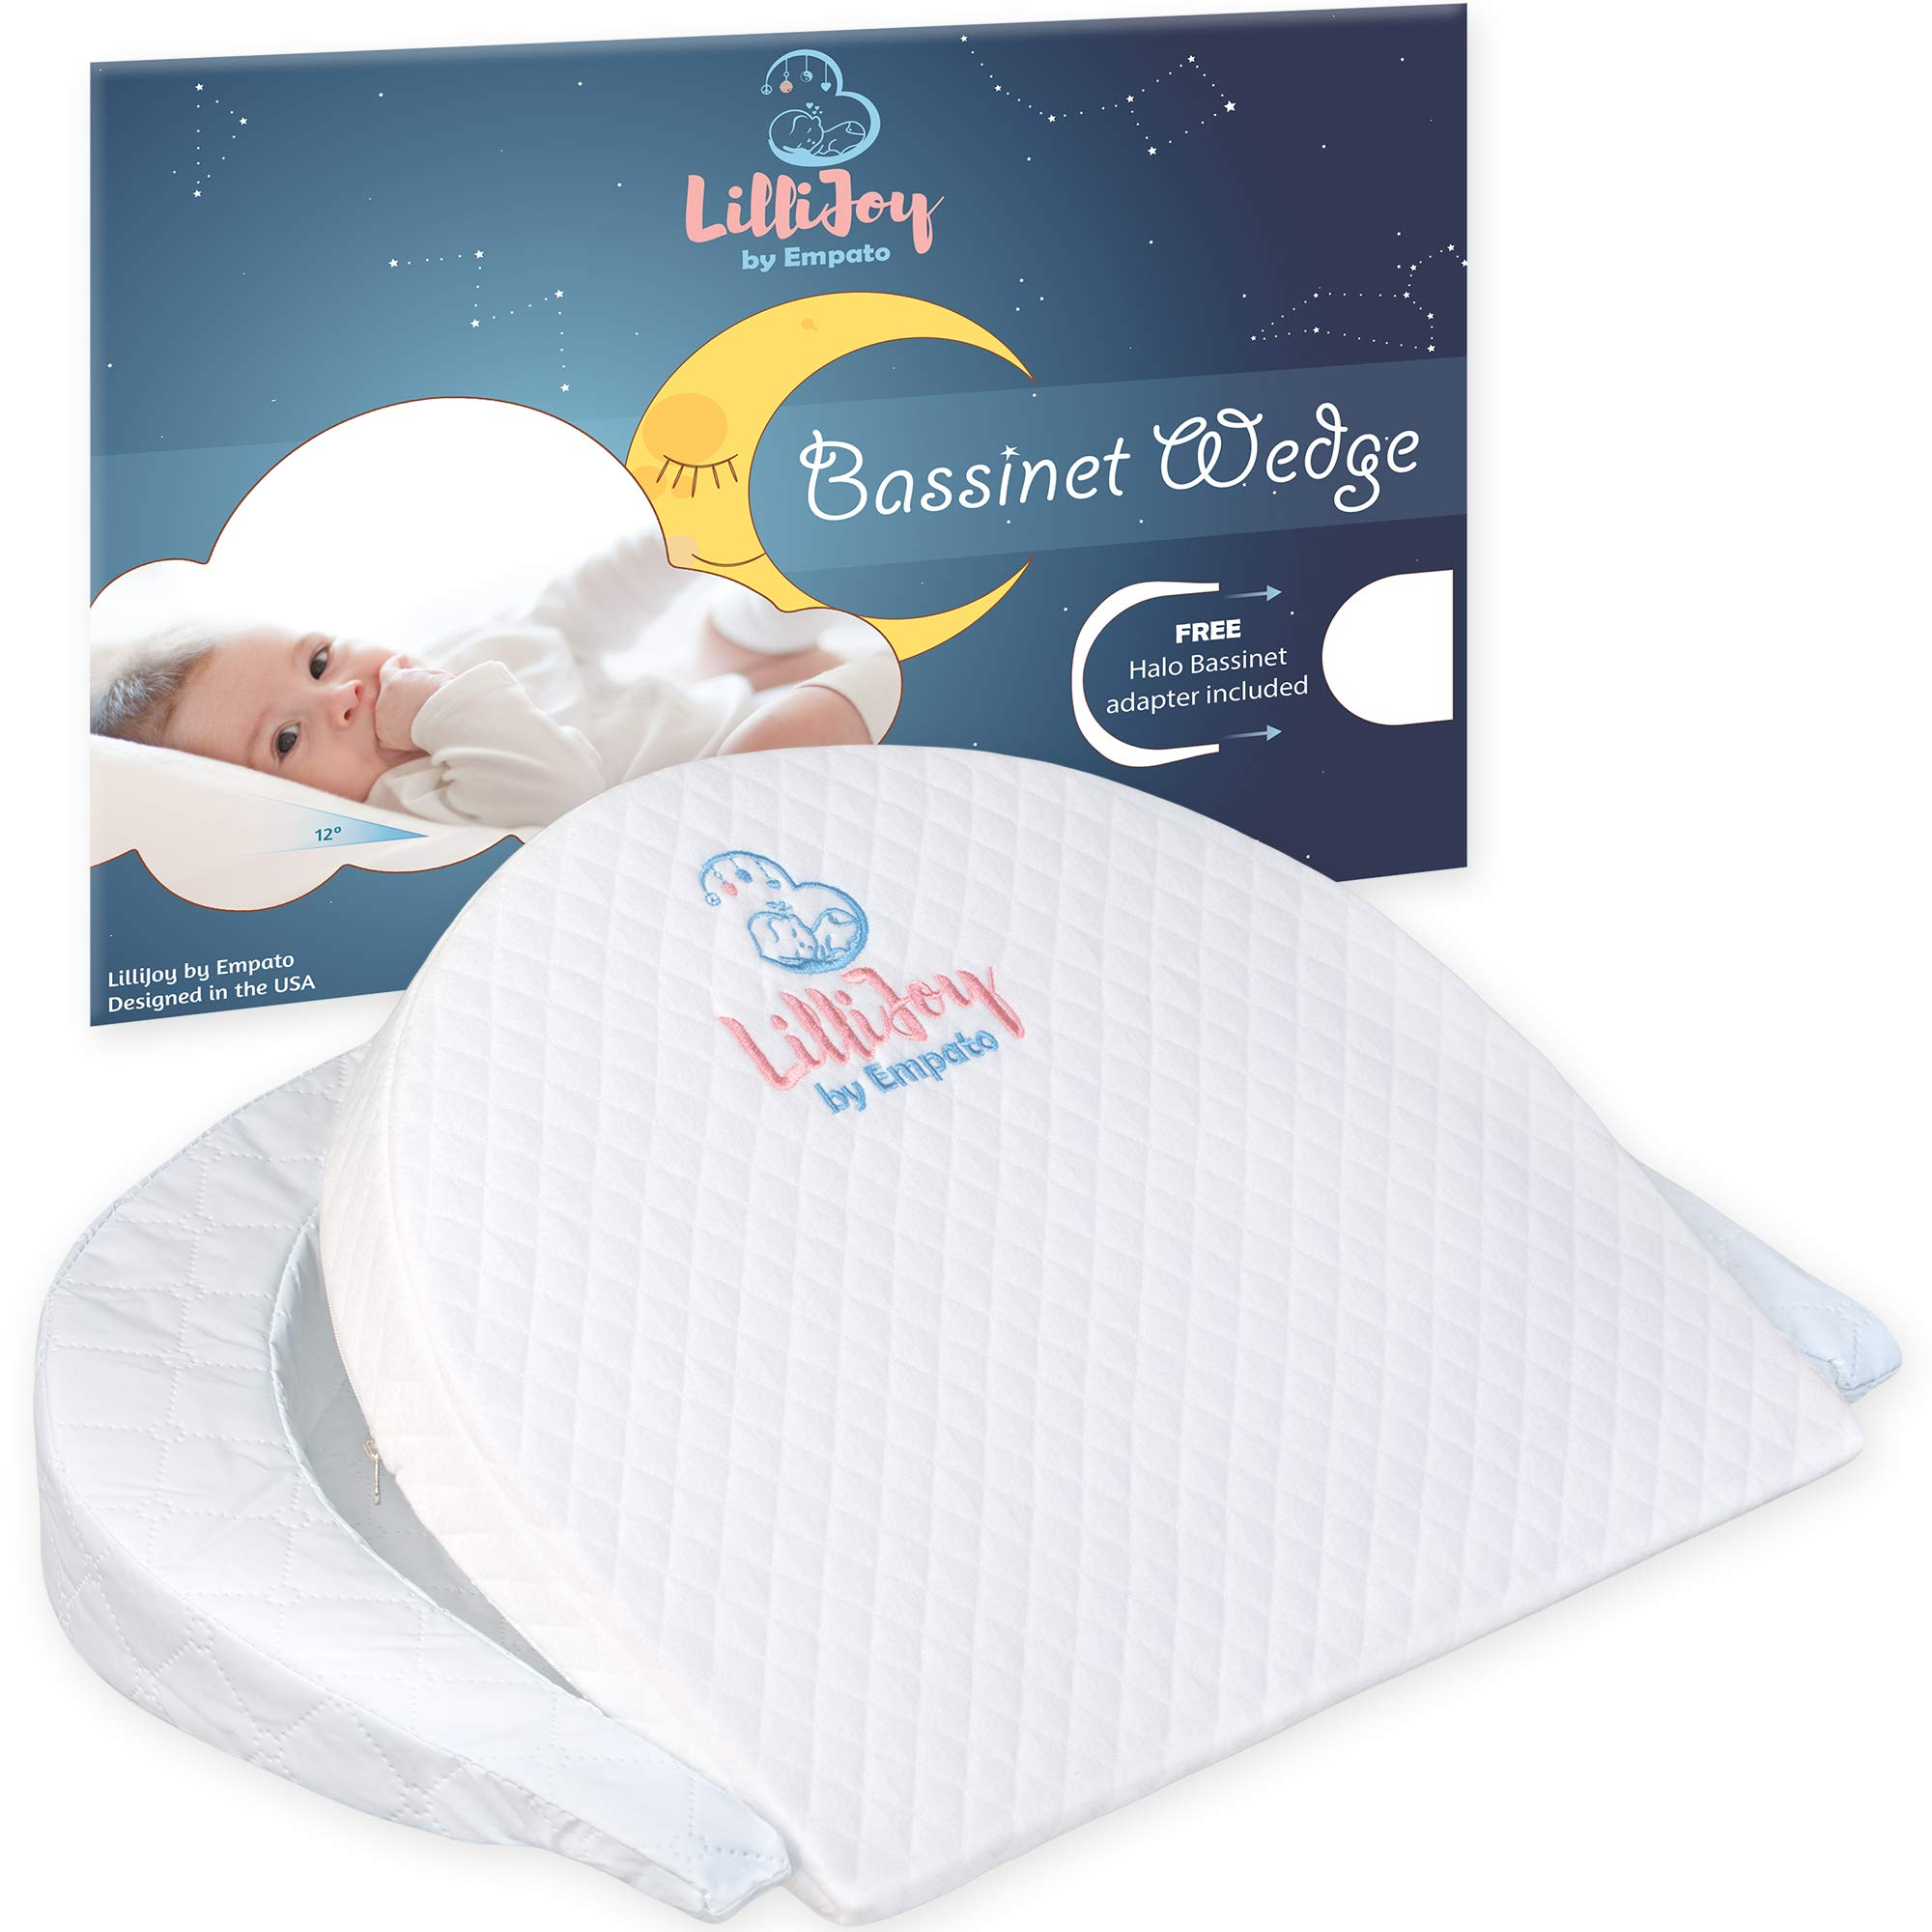 LilliJoy Premium Bassinet Wedge Pillow for Baby | Fits Halo Bassinet | 12˚ Incline Sleep Positioner for Elevated Head & Torso Support | Anti Reflux Sleeper for Infant or Newborn Colic & Congestion